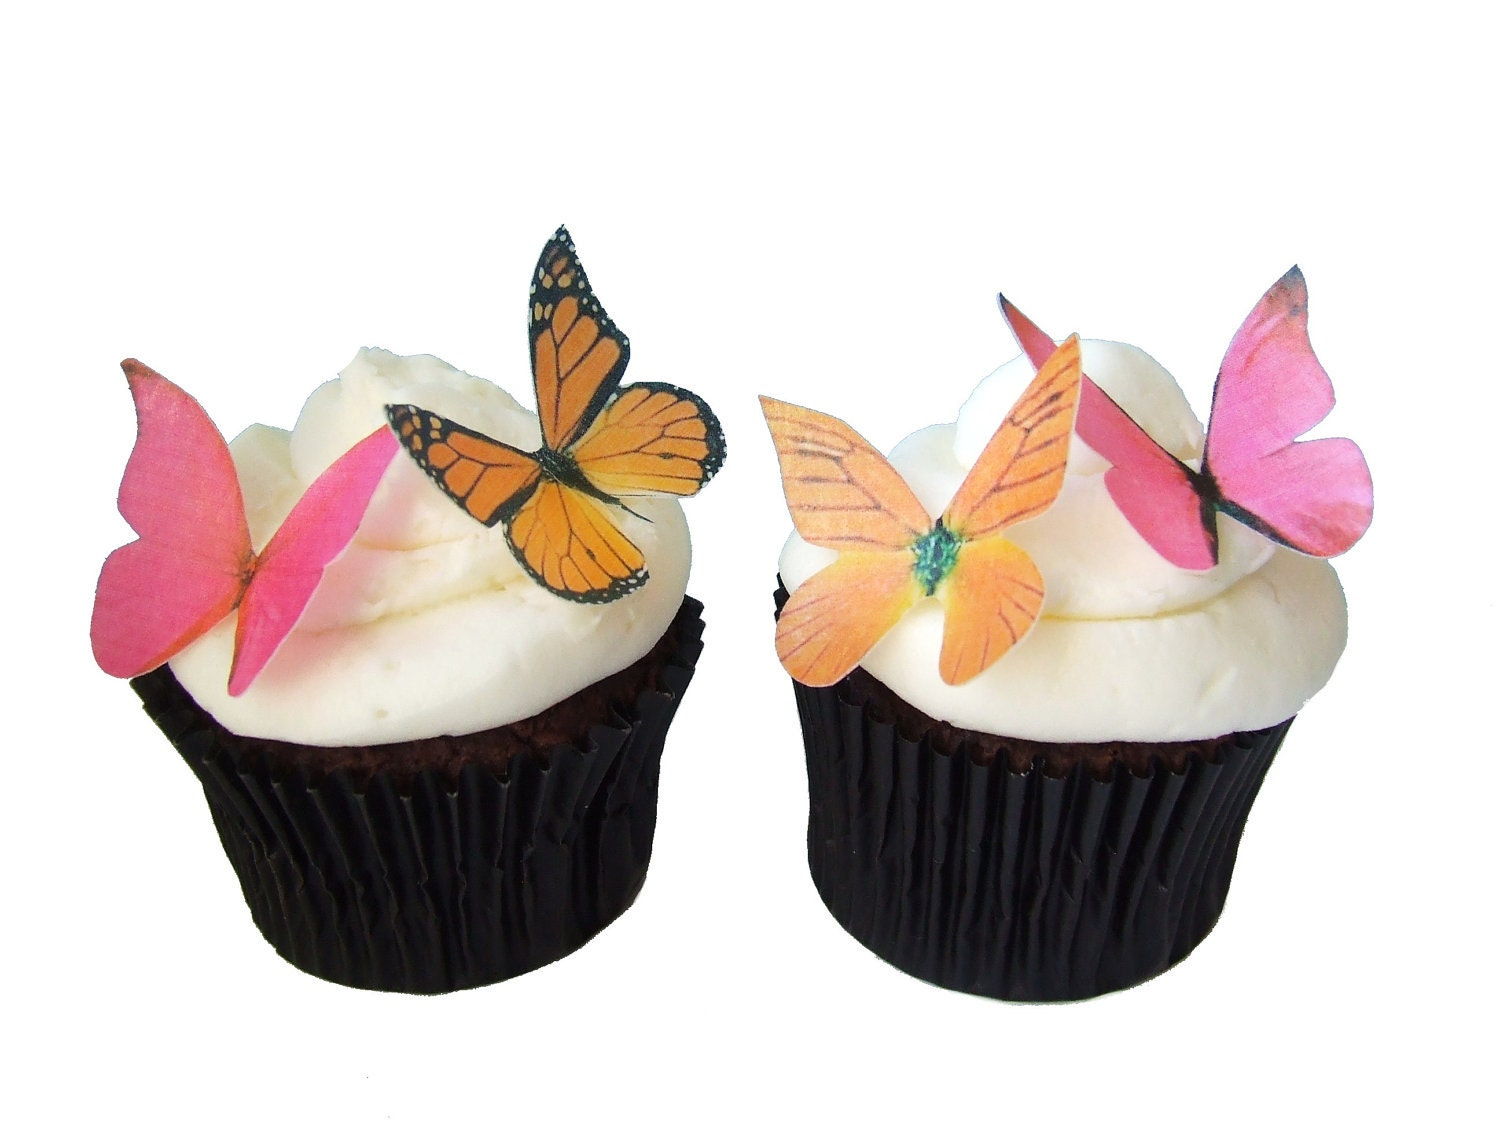 Butterfly Edible Cake Images : Edible Butterflies CAKE DECORATIONS 24 by incrEDIBLEtoppers